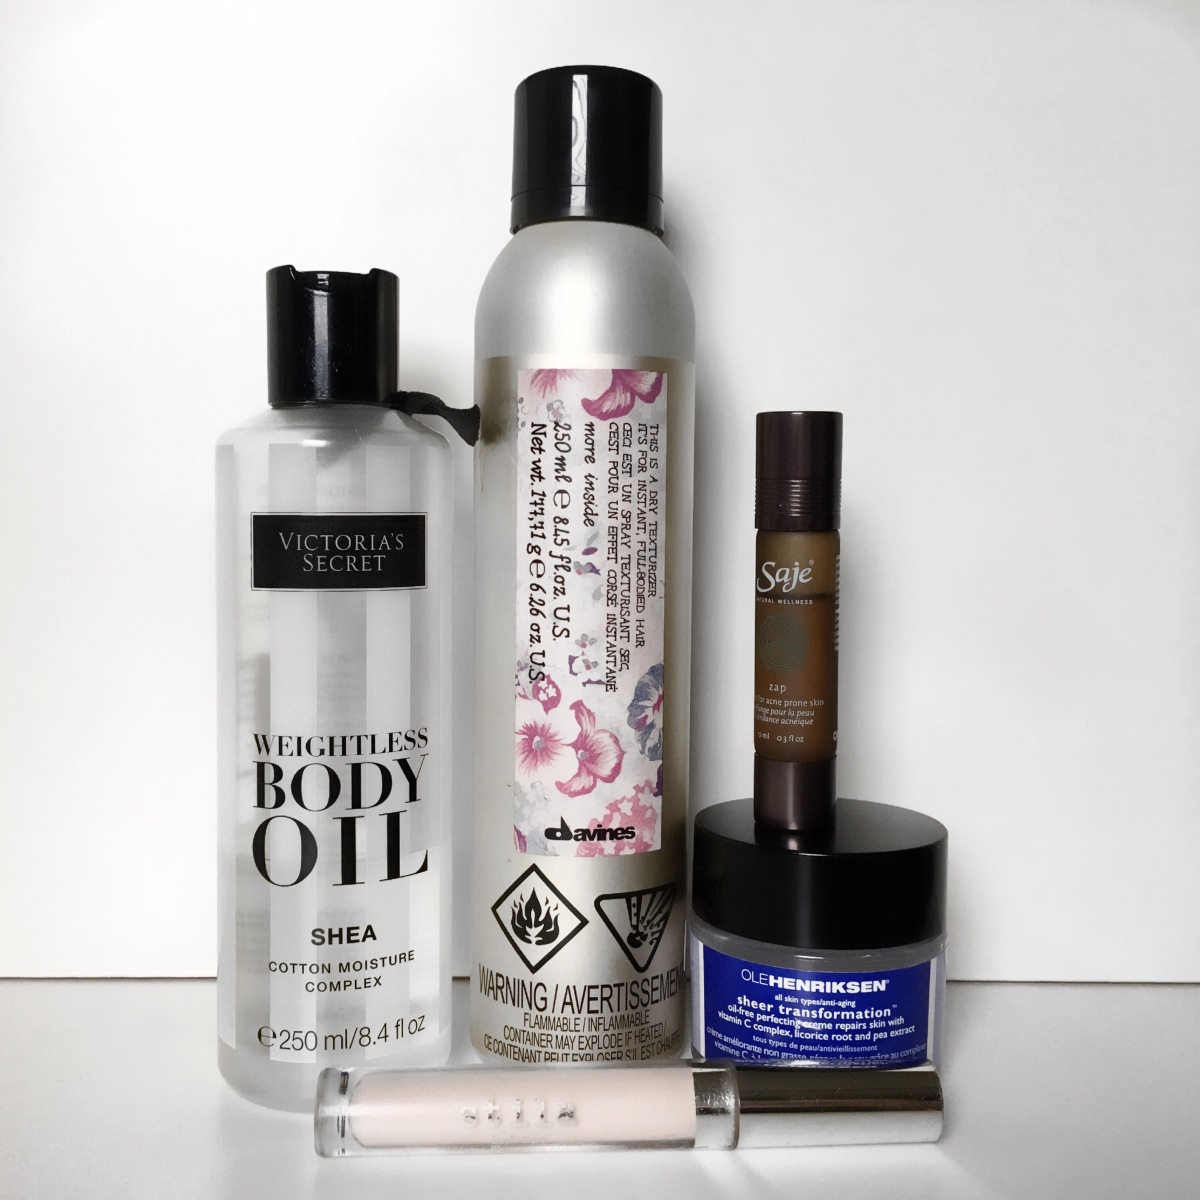 GETTING READY REPORT ANYSSA DINARDO OLE HENRIKSEN STILA VICTORIAS SECRET SAJE DAVINES